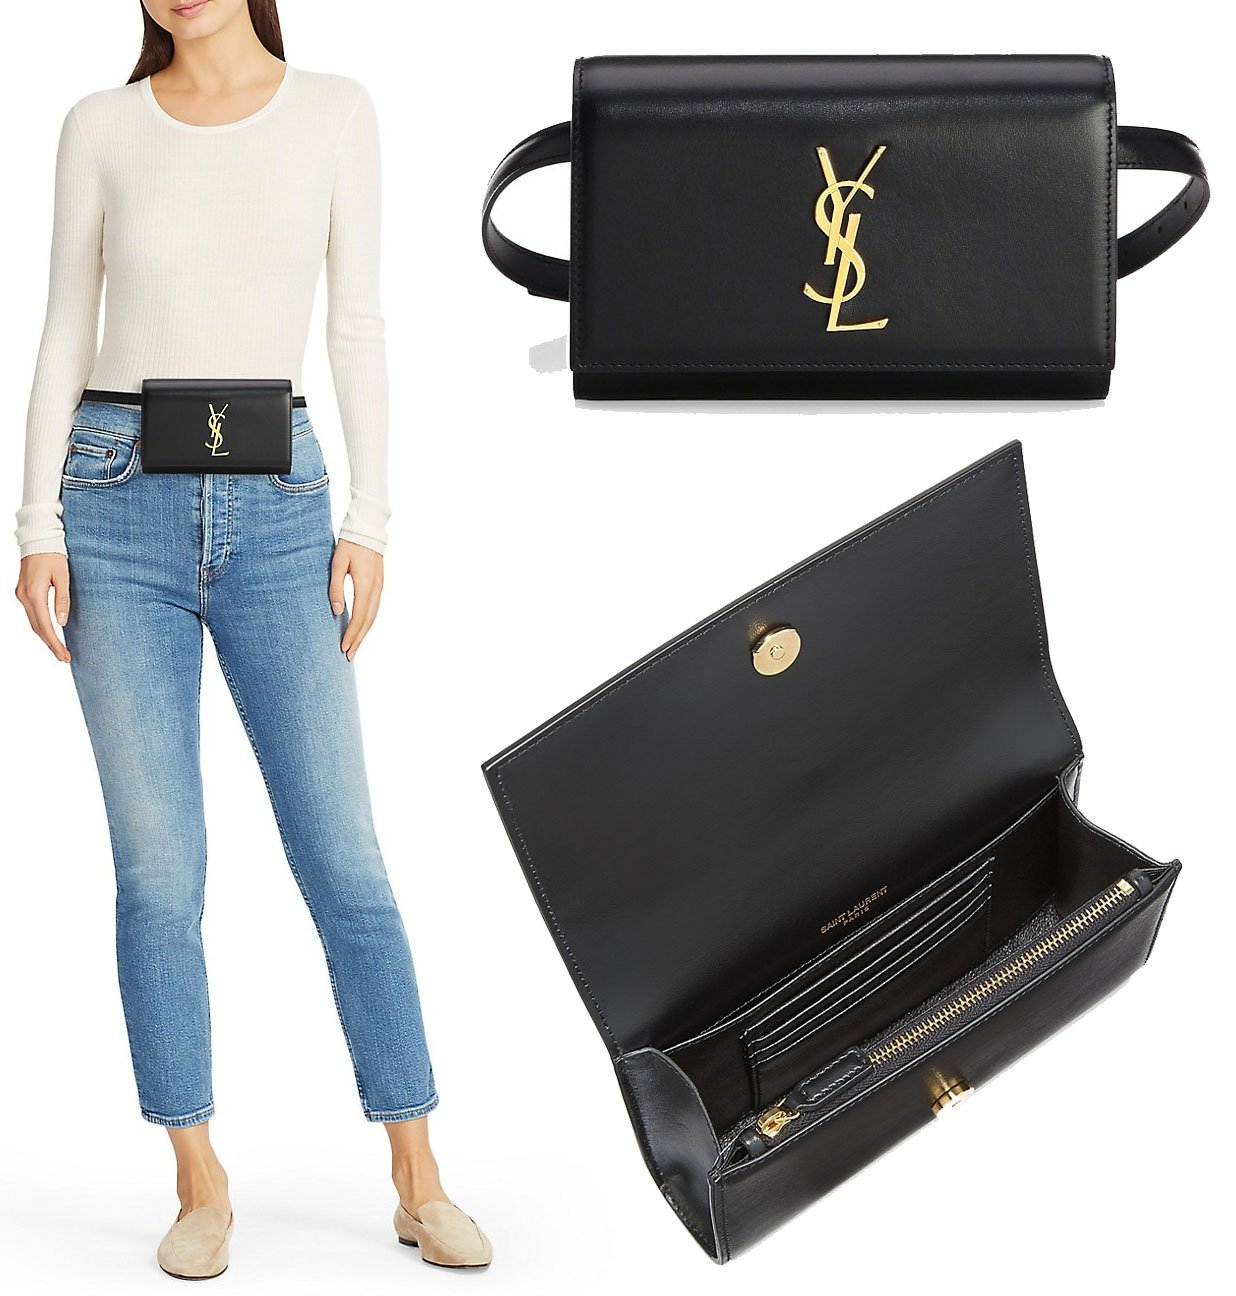 A classy, minimalist belt bag made of smooth leather with gold-tone YSL logo on the foldover flap